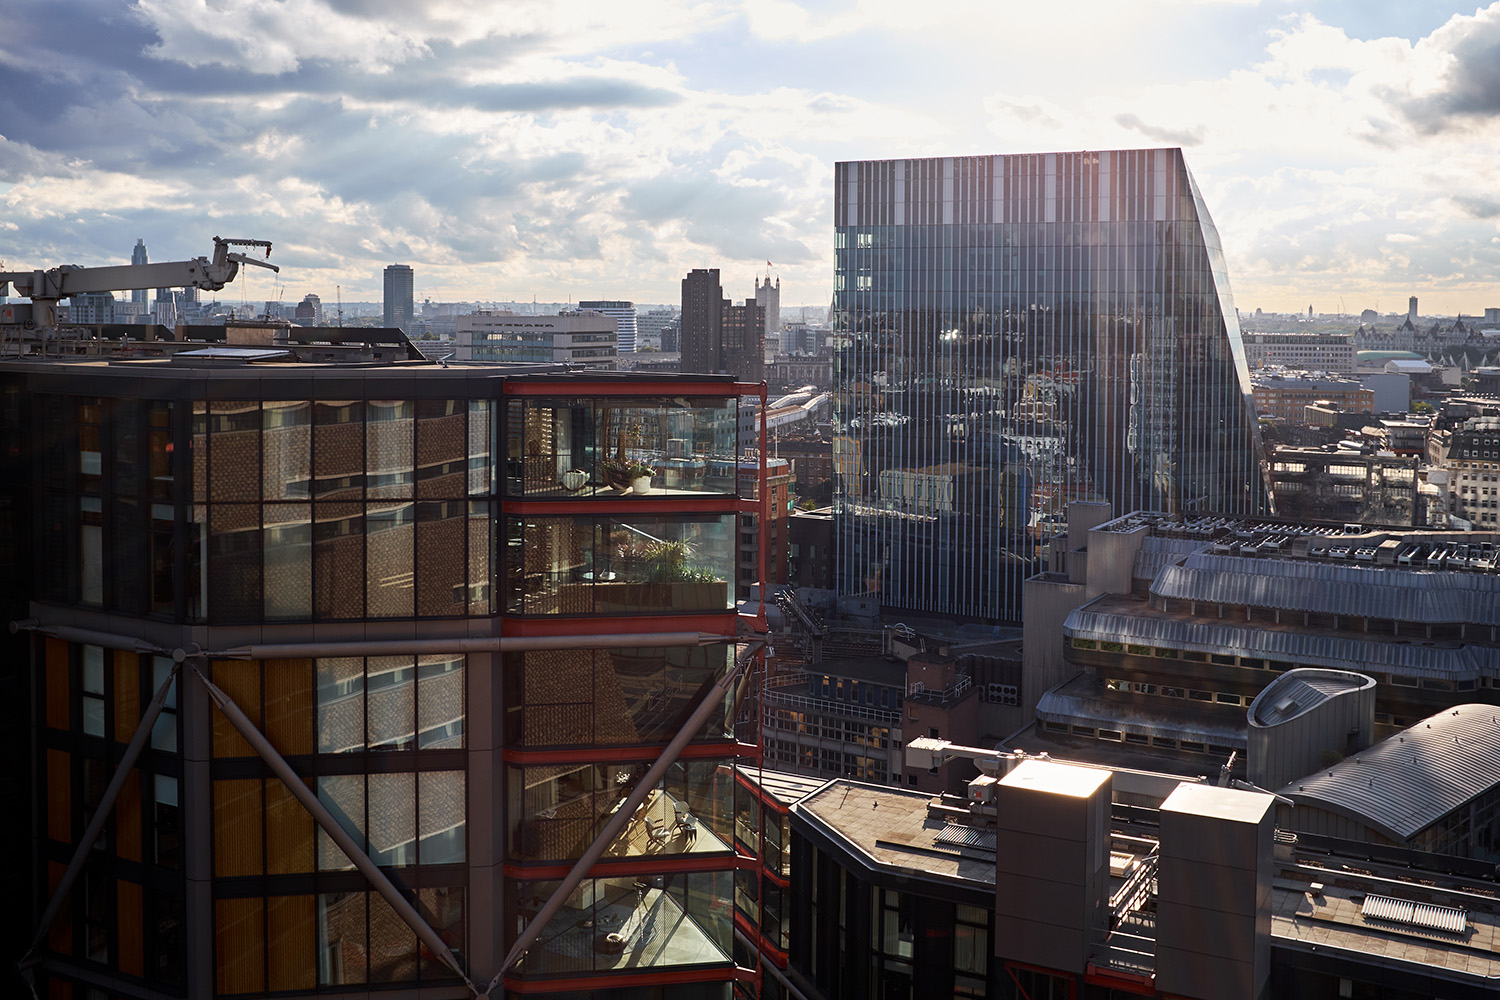 The View from the new Tate Modern Switch House extension. Somewhere I'm sure I'll visit often.